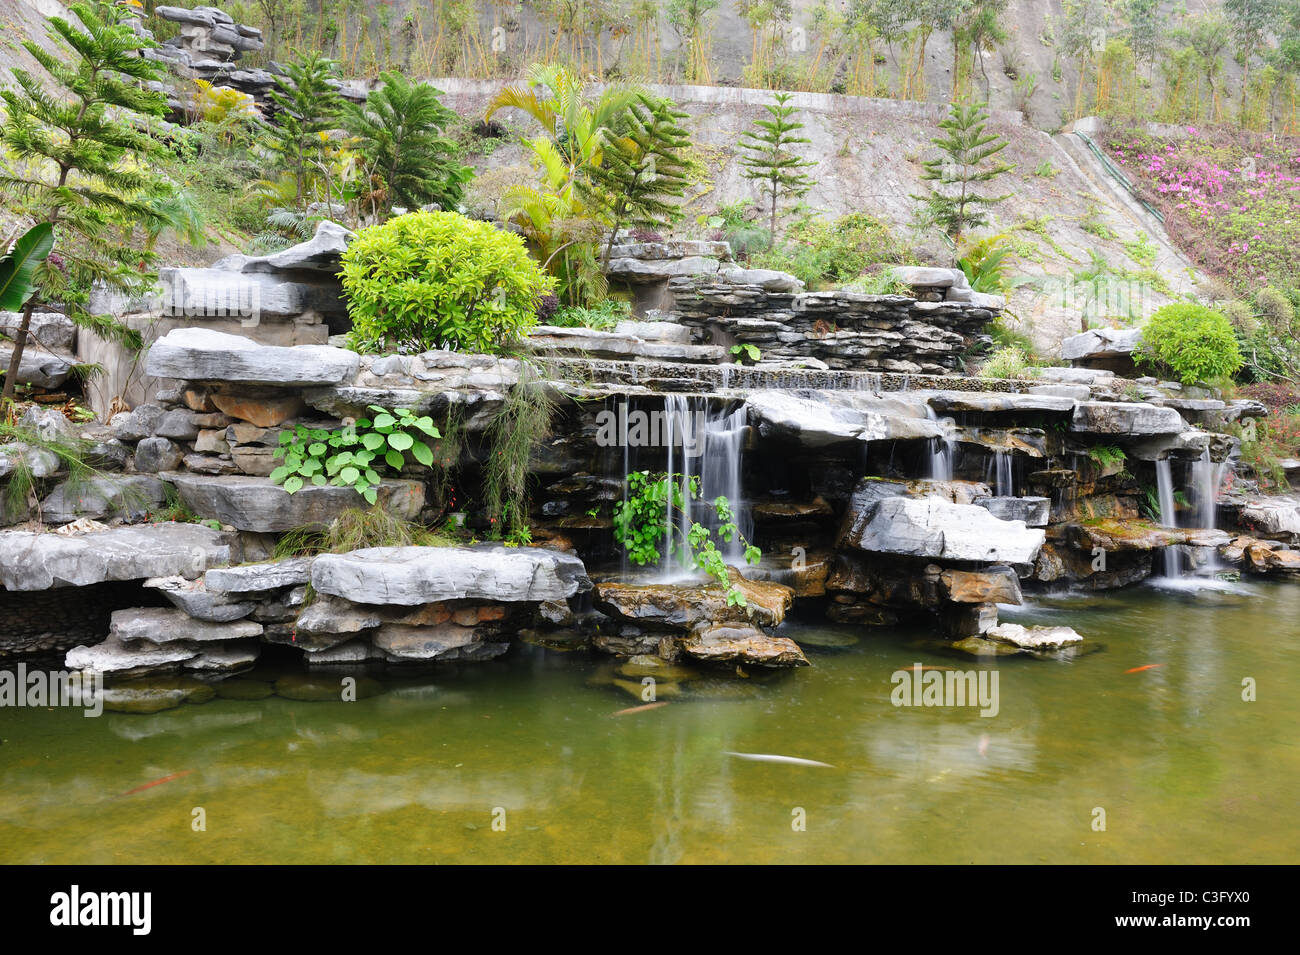 chinese rockery stockfotos chinese rockery bilder alamy. Black Bedroom Furniture Sets. Home Design Ideas